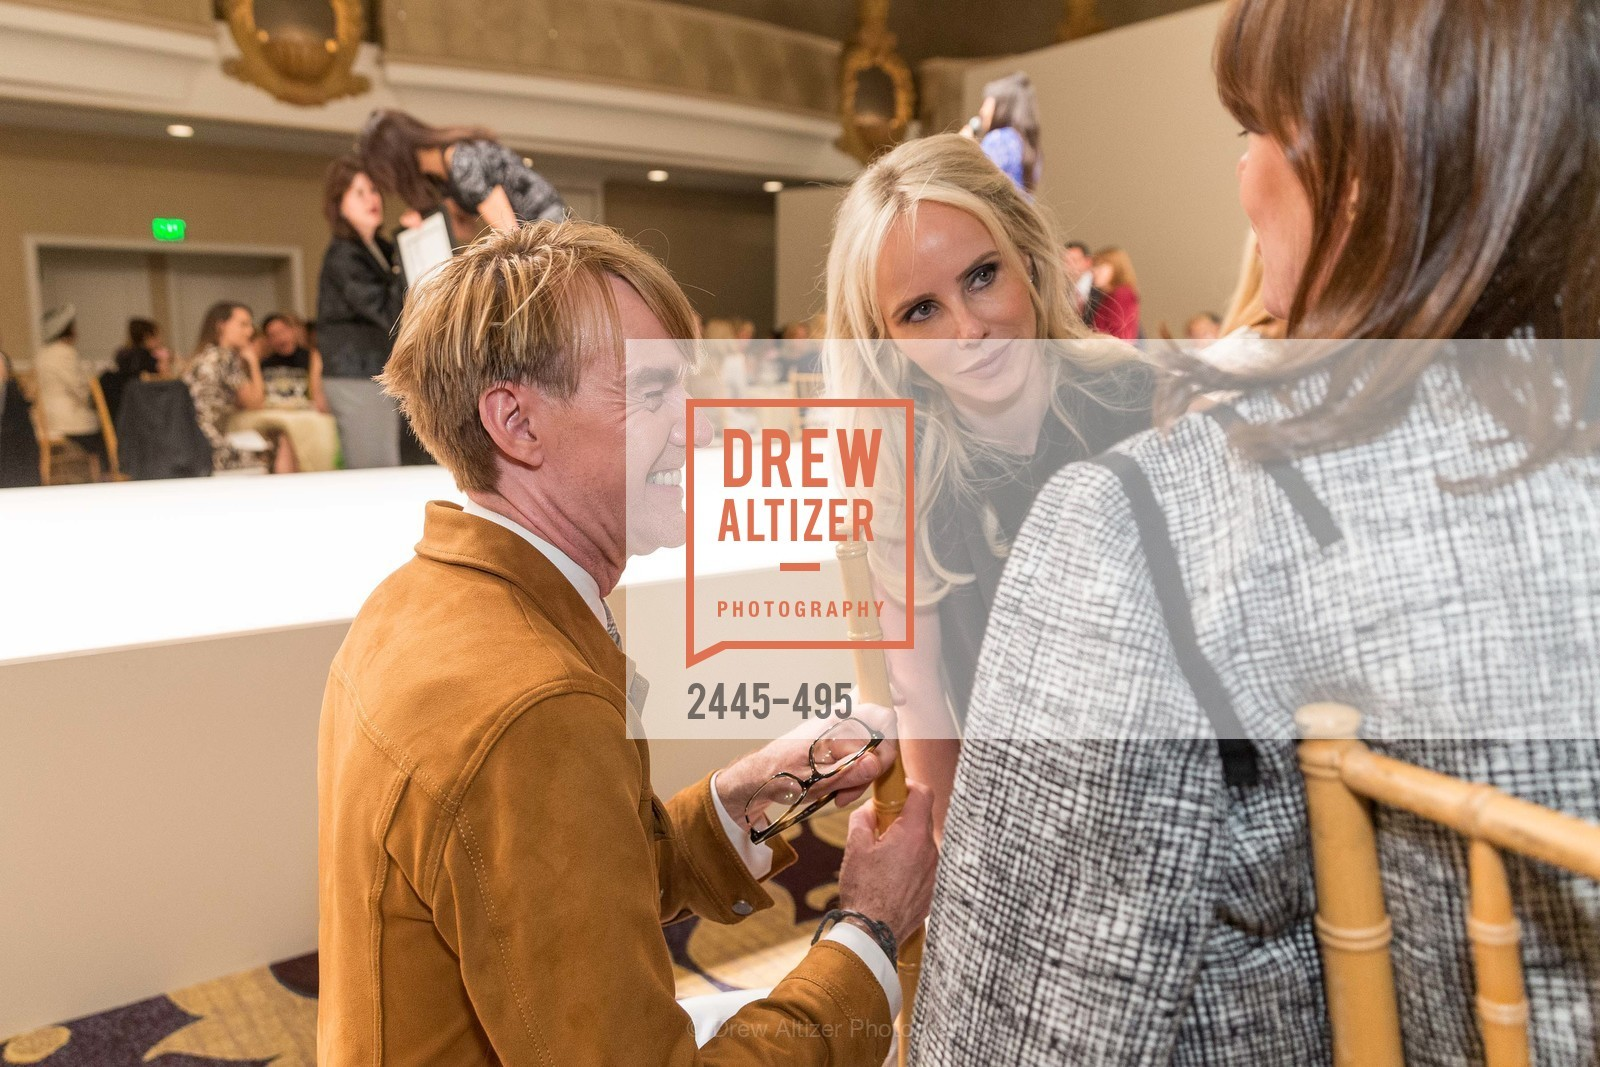 Ken Downing, Vanessa Getty, SAN FRANCISCO BALLET AUXULIARY 2014 Fashion Show, US. The Fairmont, April 3rd, 2014,Drew Altizer, Drew Altizer Photography, full-service event agency, private events, San Francisco photographer, photographer California